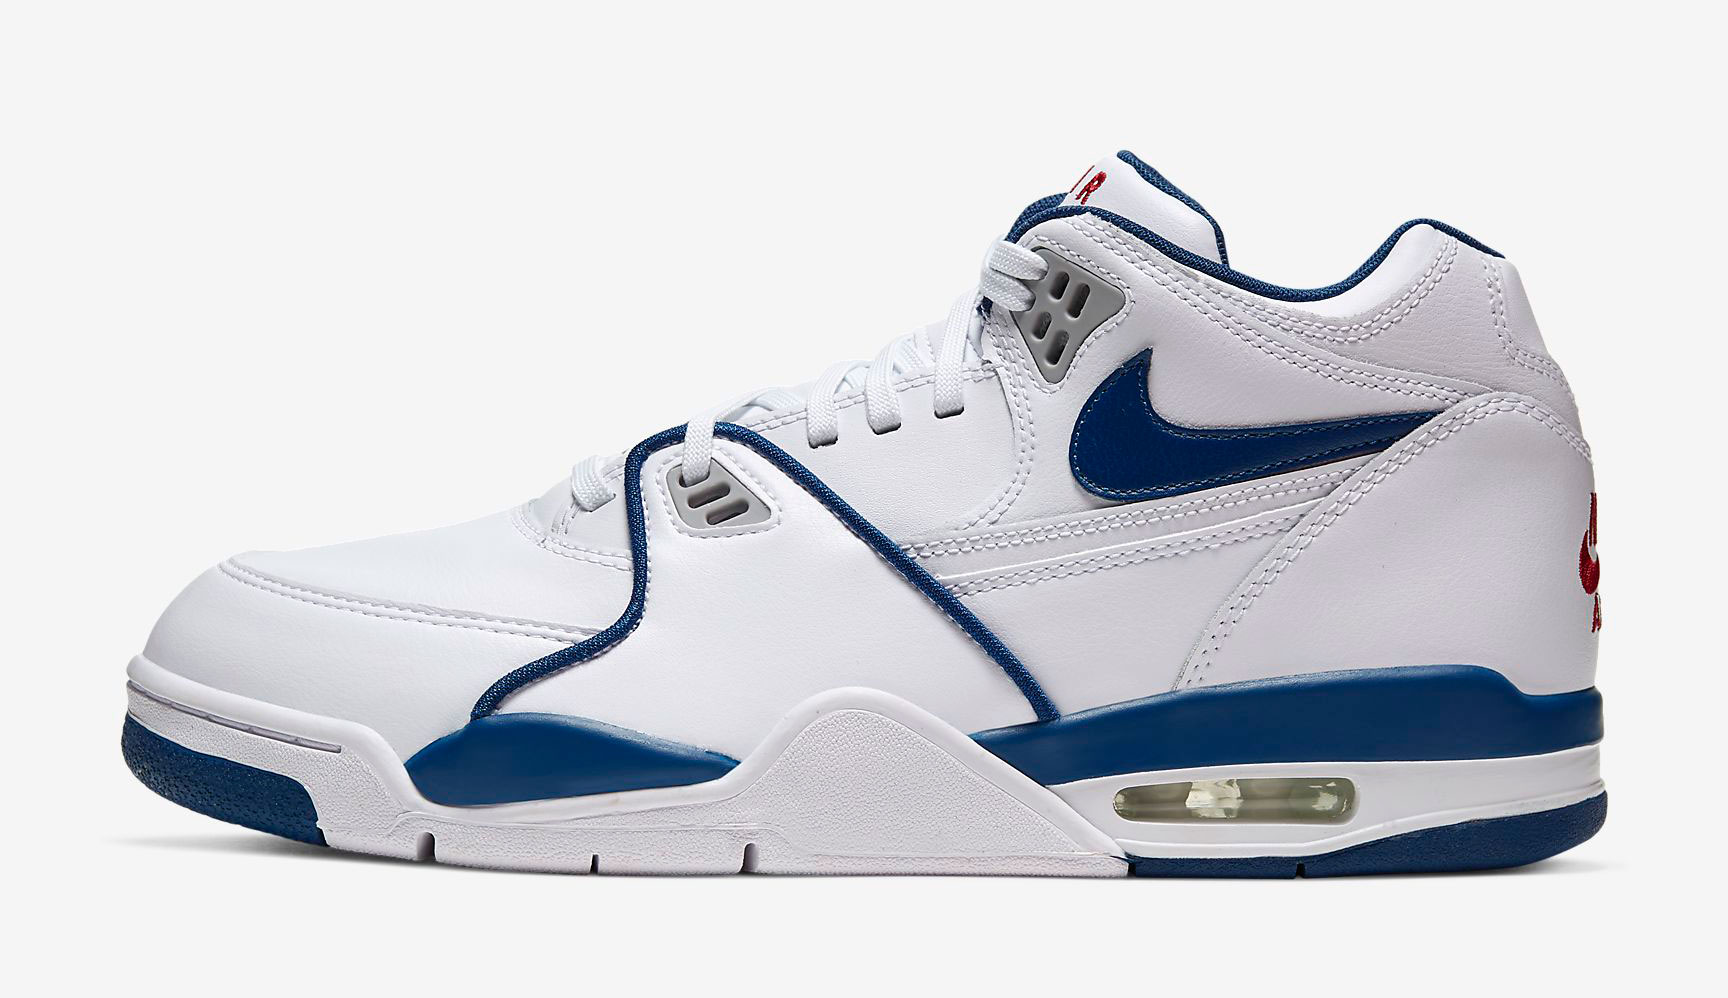 nike-air-flight-89-white-dark-royal-blue-release-date